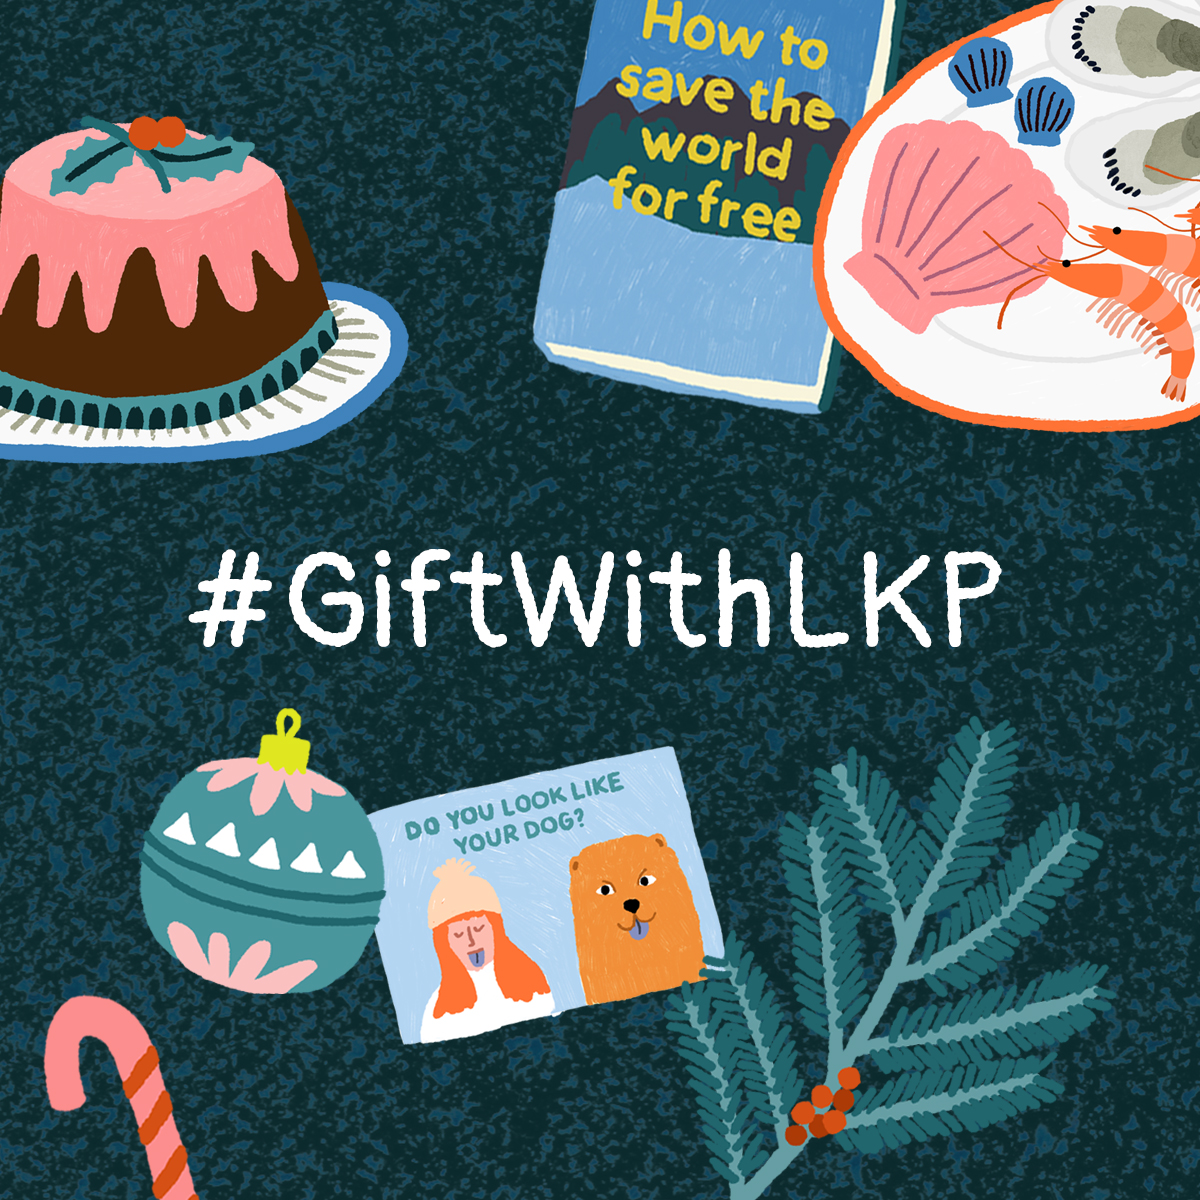 gift with lkp